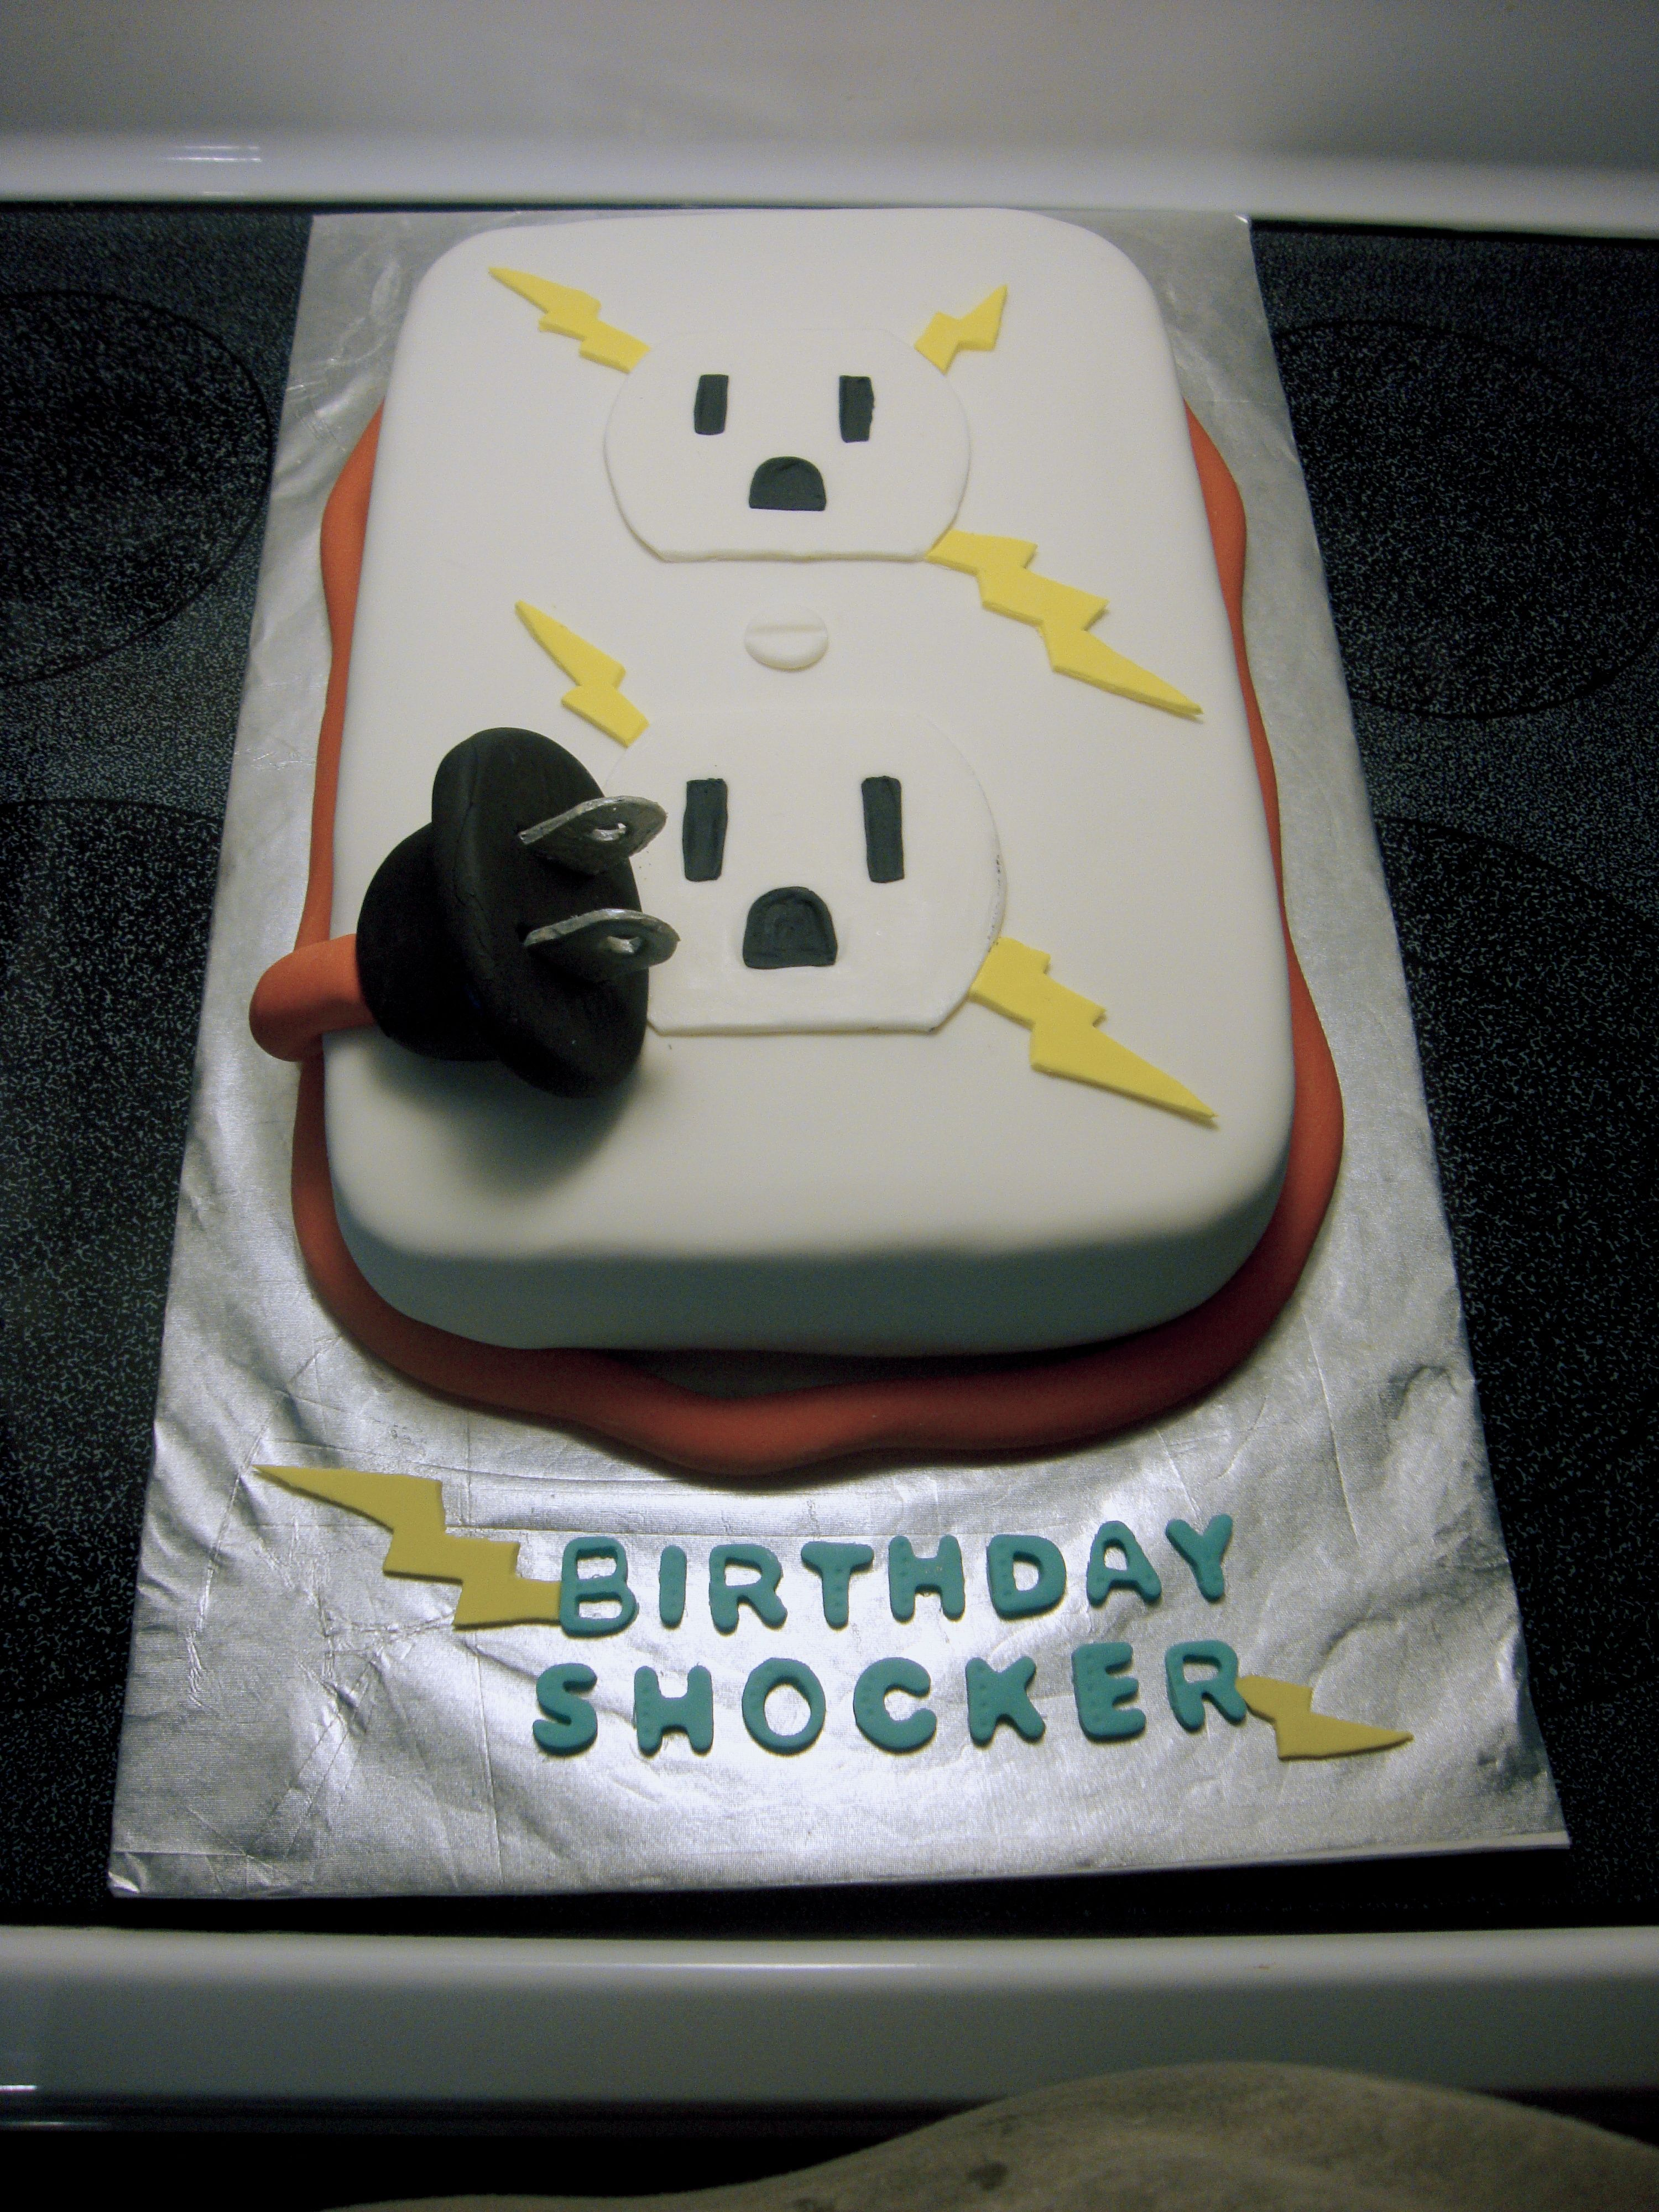 The perfect cake honoring the Great Electrician Birthday Shocker